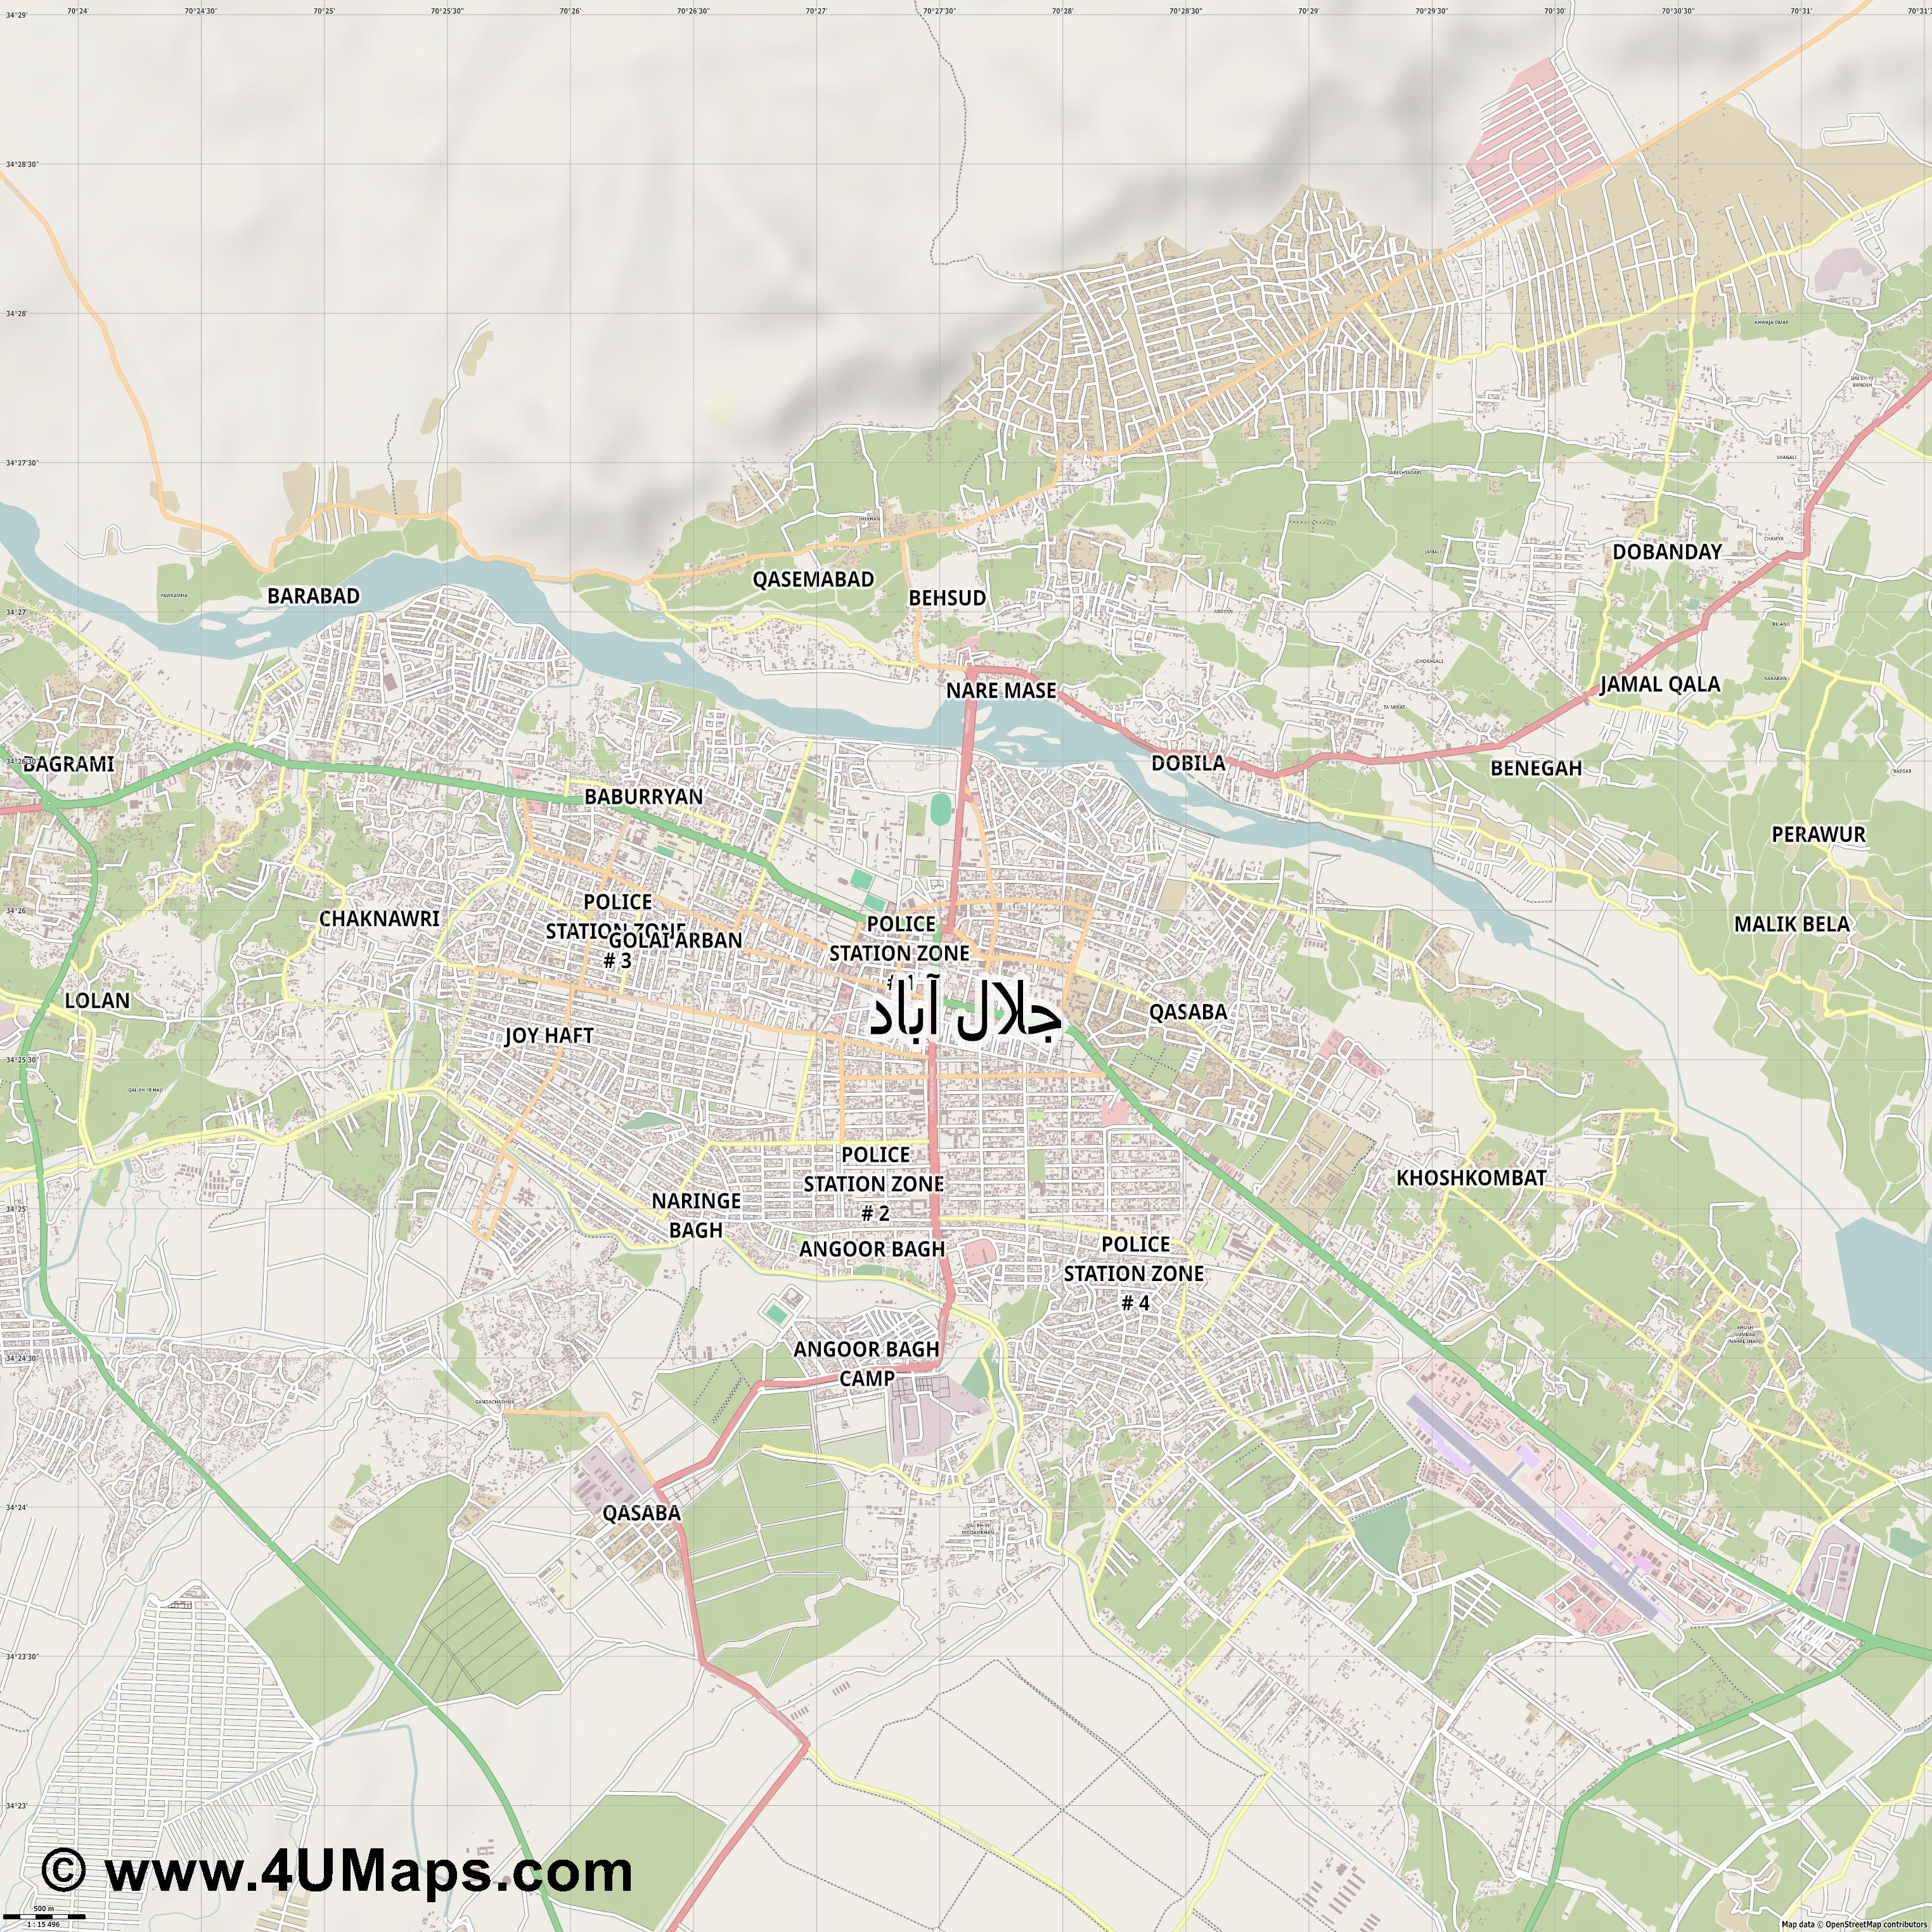 Jalalabad Dschalalabad  jpg ultra high detail preview vector city map